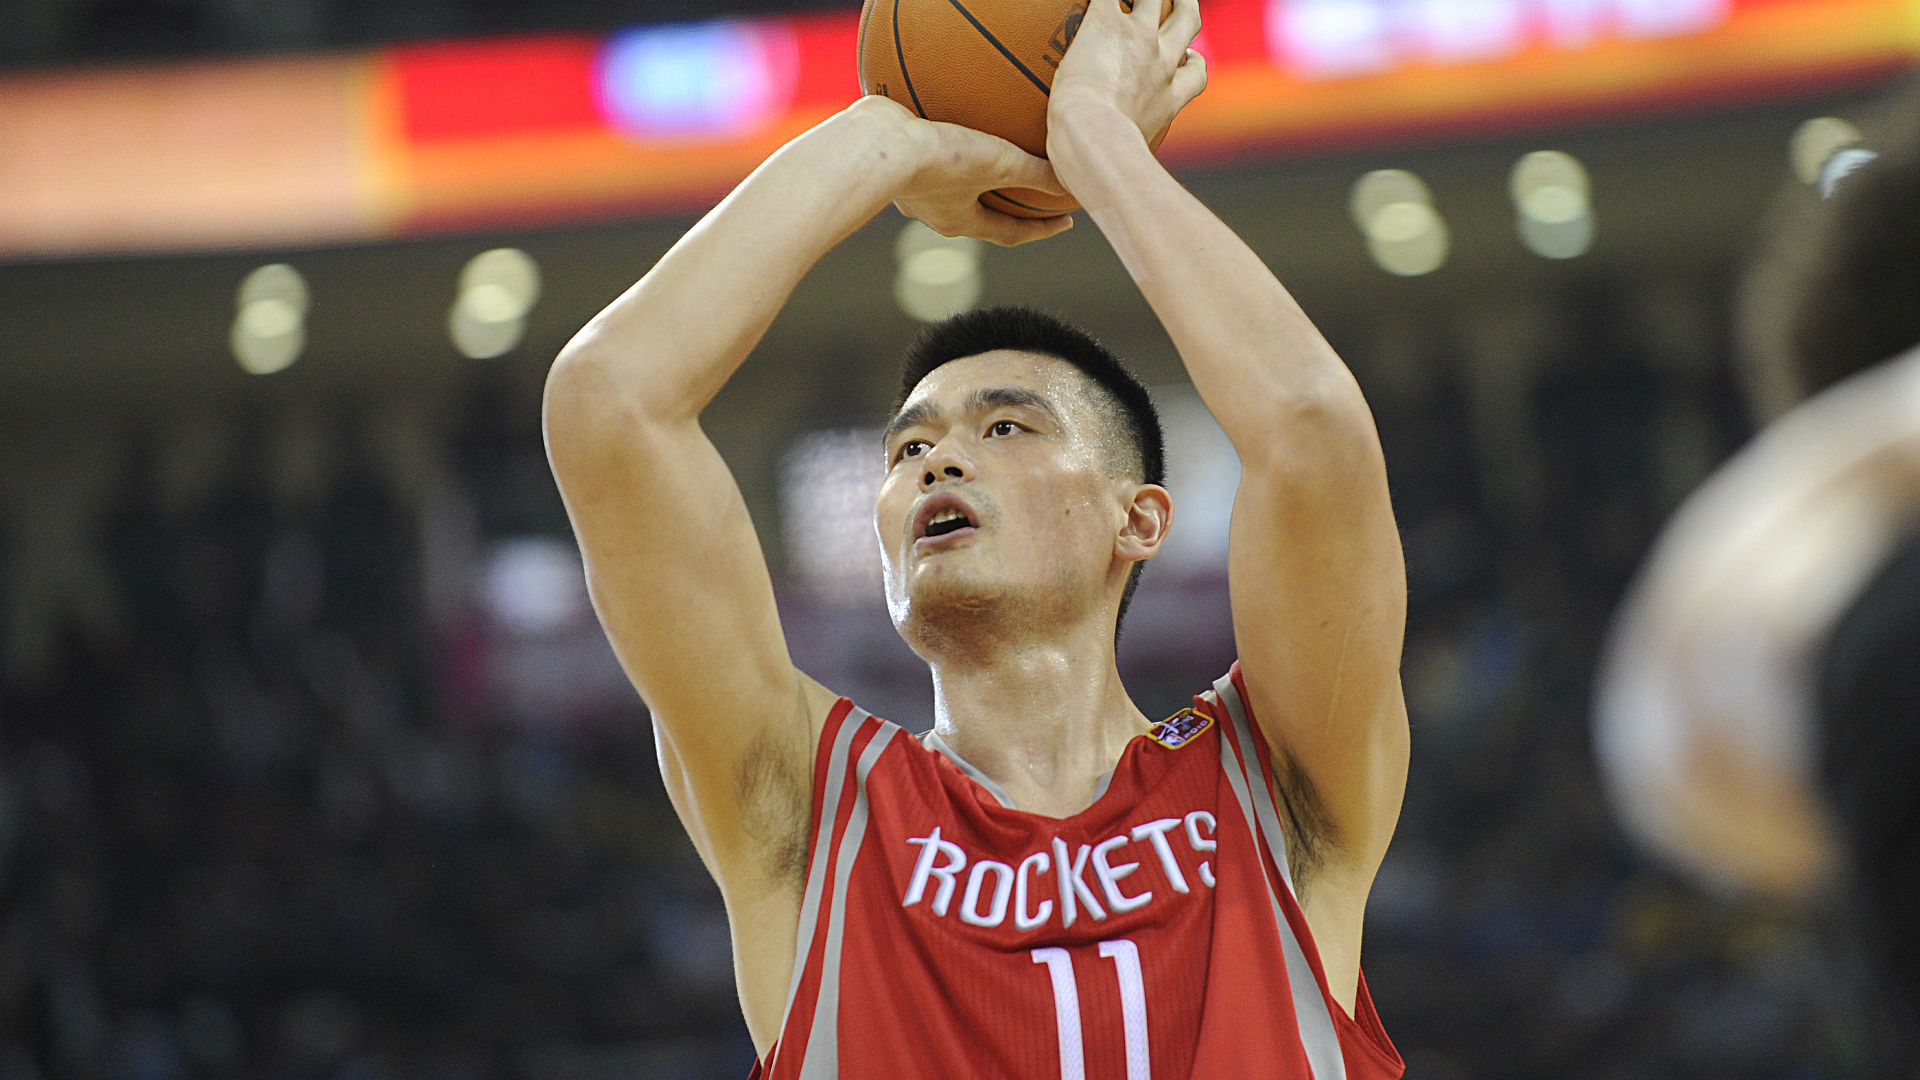 huge selection of ea0bc 32b4c Rockets retire Yao Ming's No. 11 jersey | Sporting News